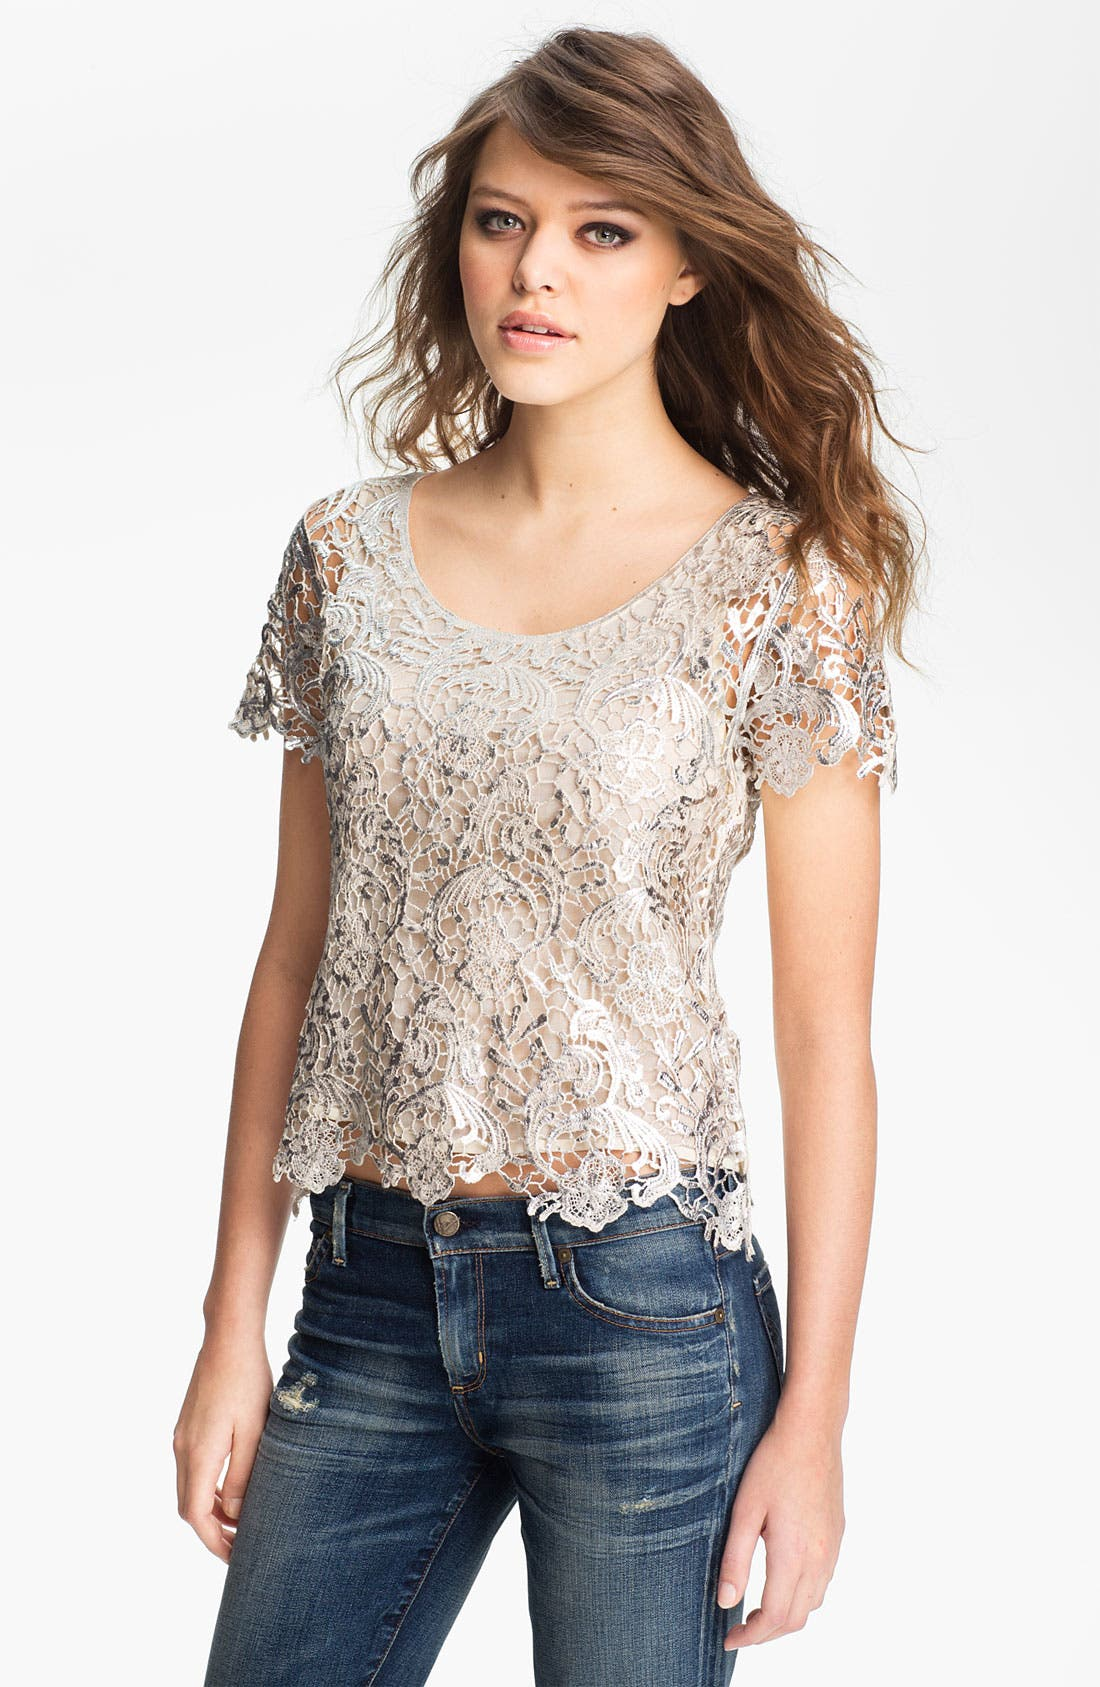 Main Image - GREYLIN Lace Metallic Brushed Lace Top